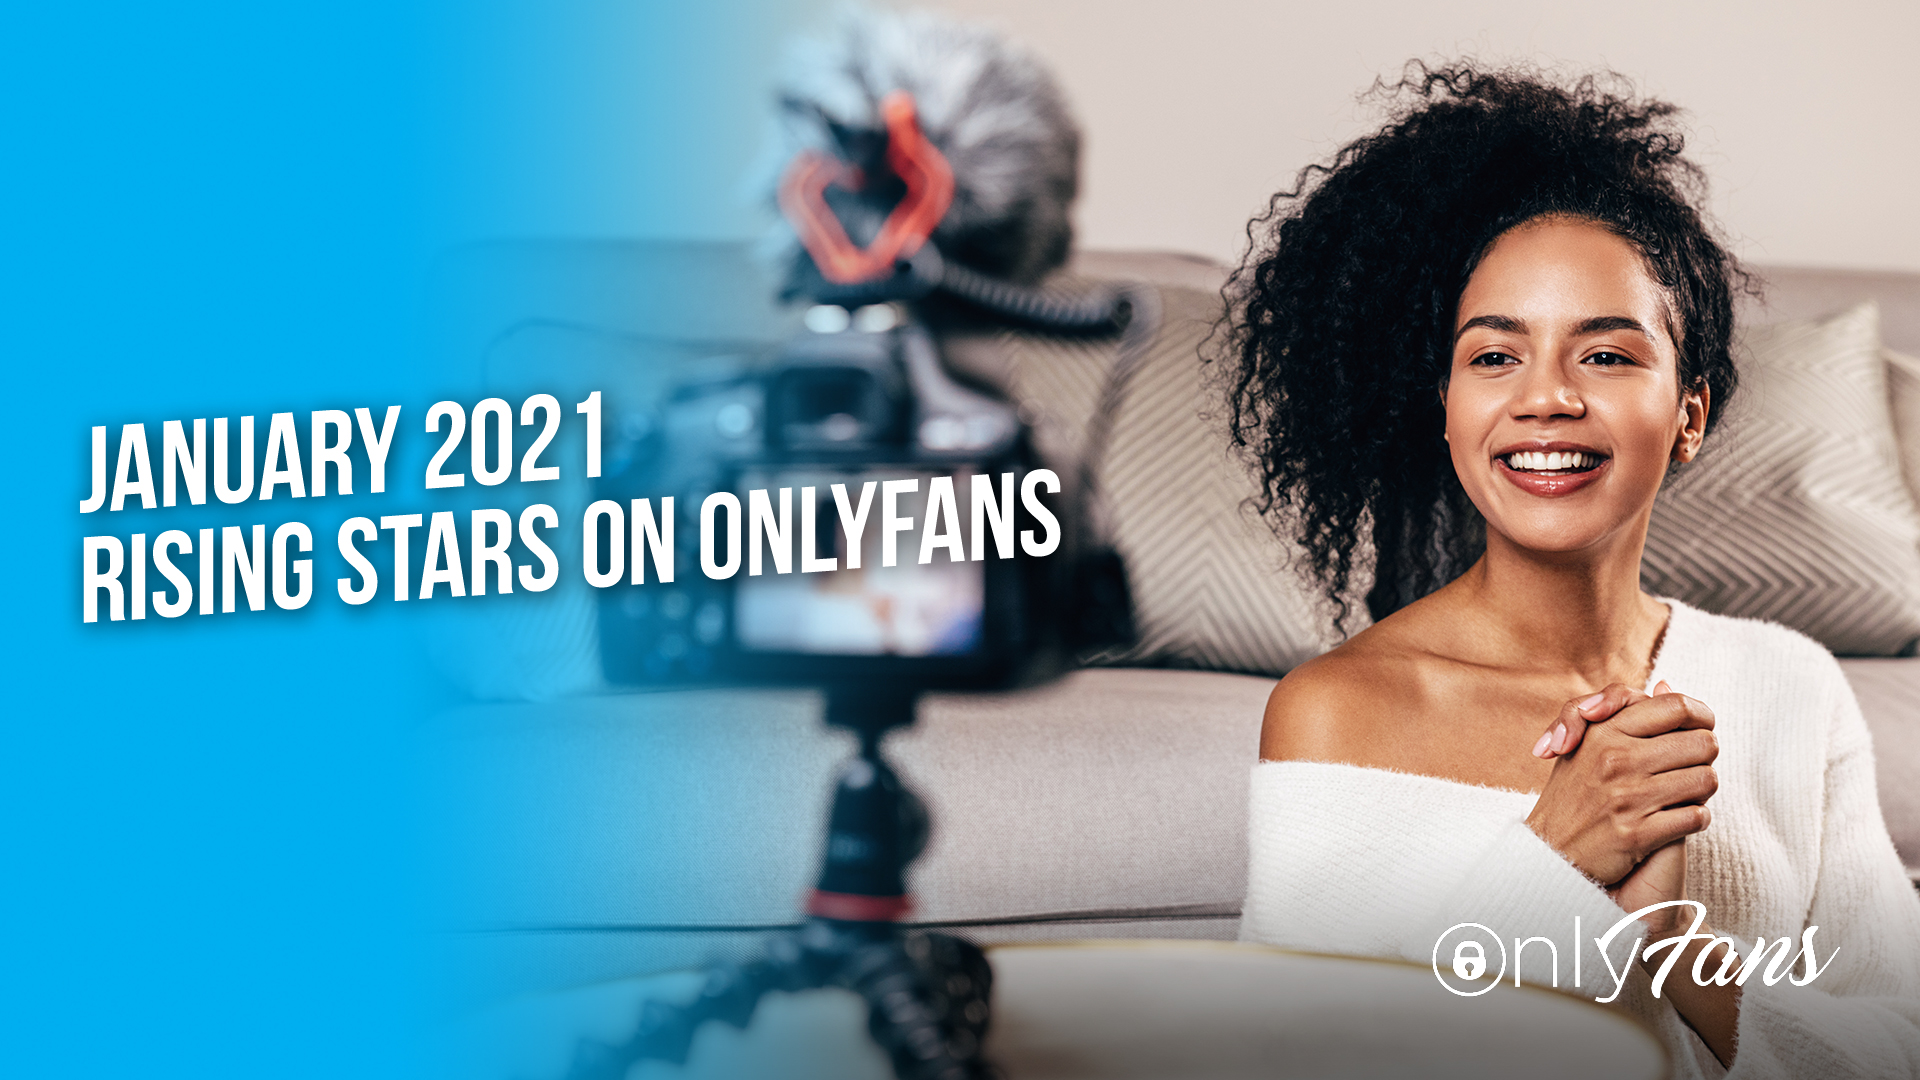 January 2021 Rising Stars on OnlyFans